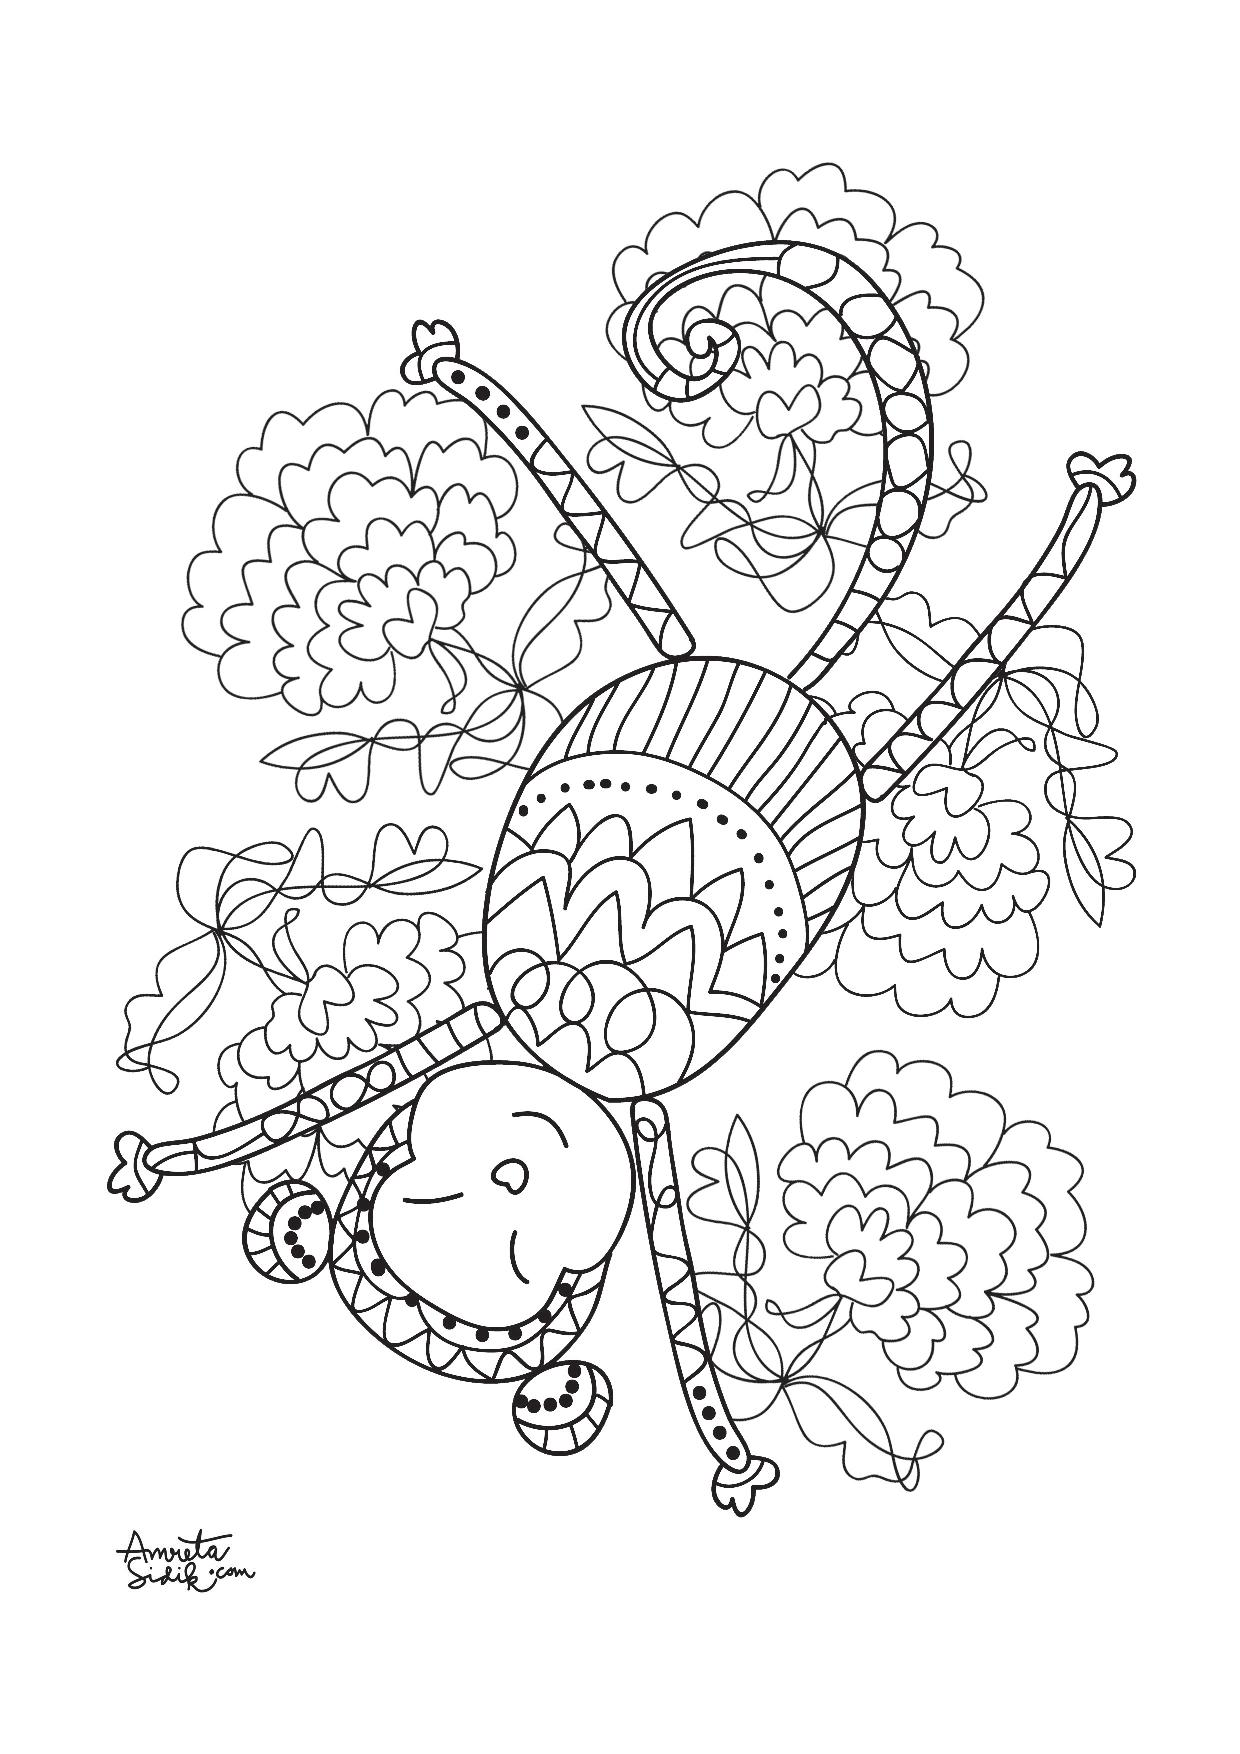 Free coloring pages for young adults - Year Of The Monkey 5 Image With Monkey From The Gallery Zen